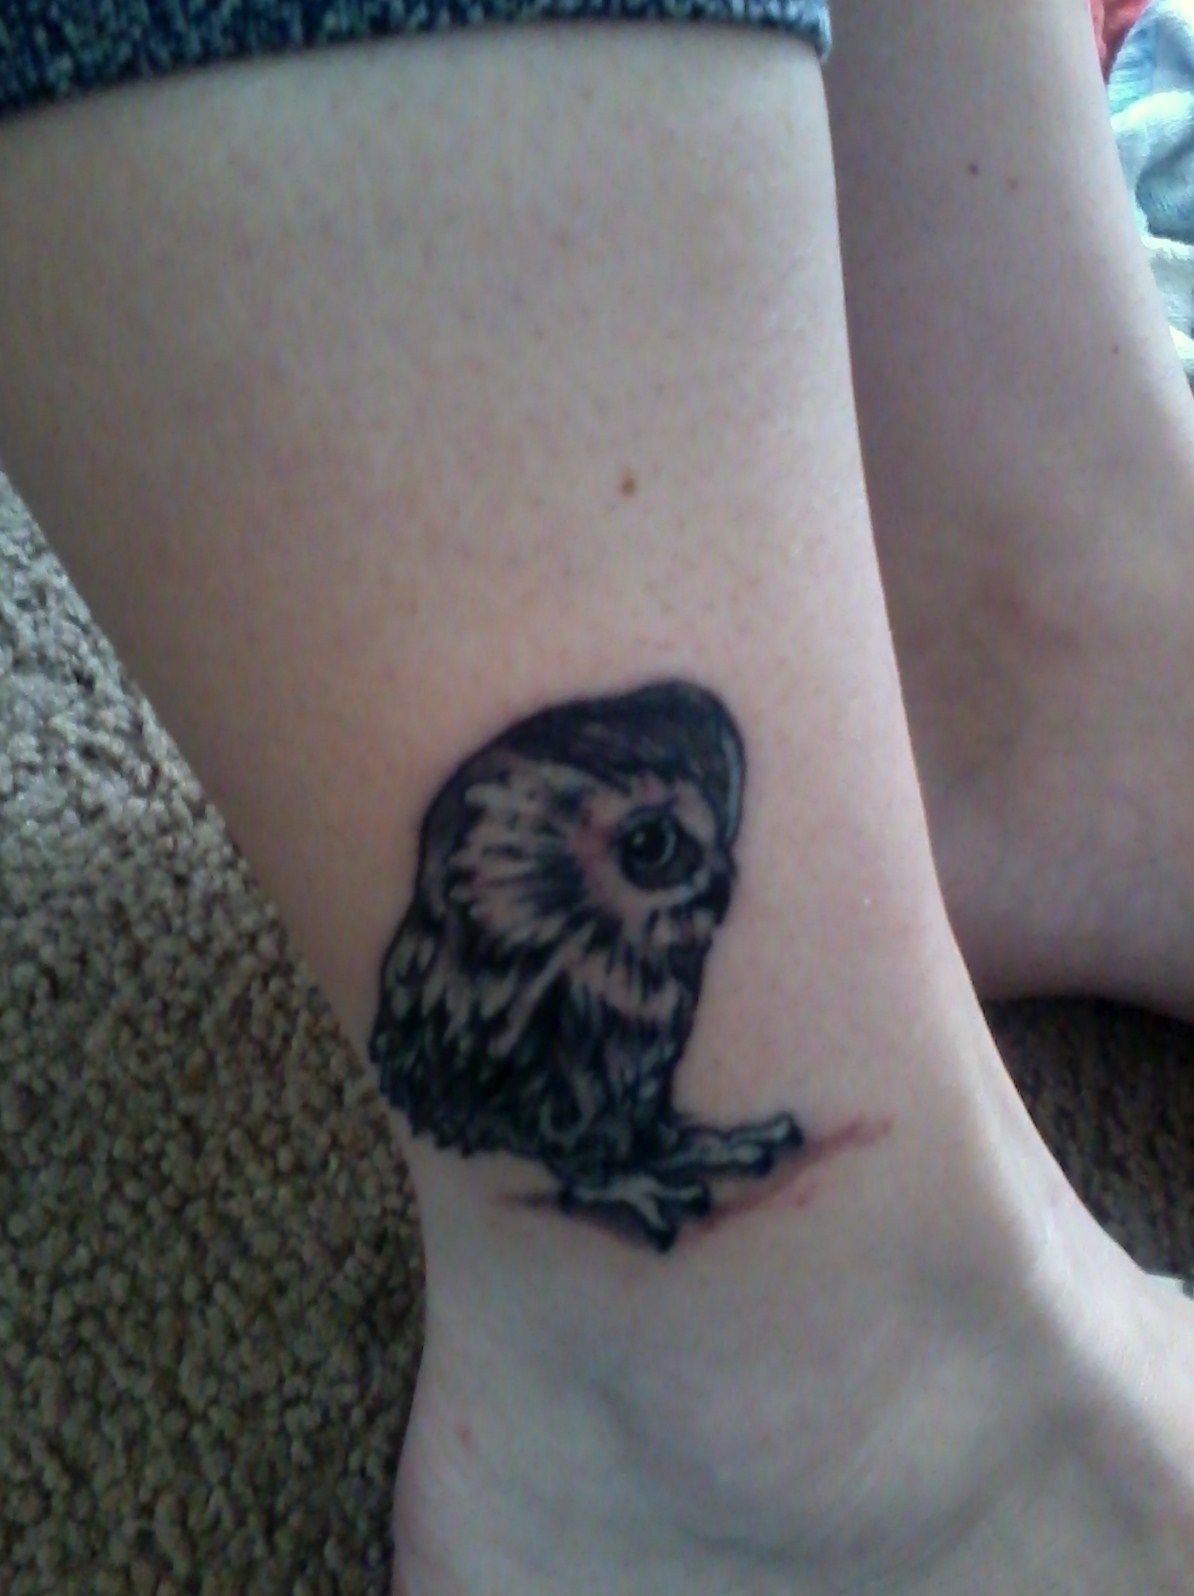 Small spiritual tattoo ideas i absolutely love owls they are unique and stand for wisdom